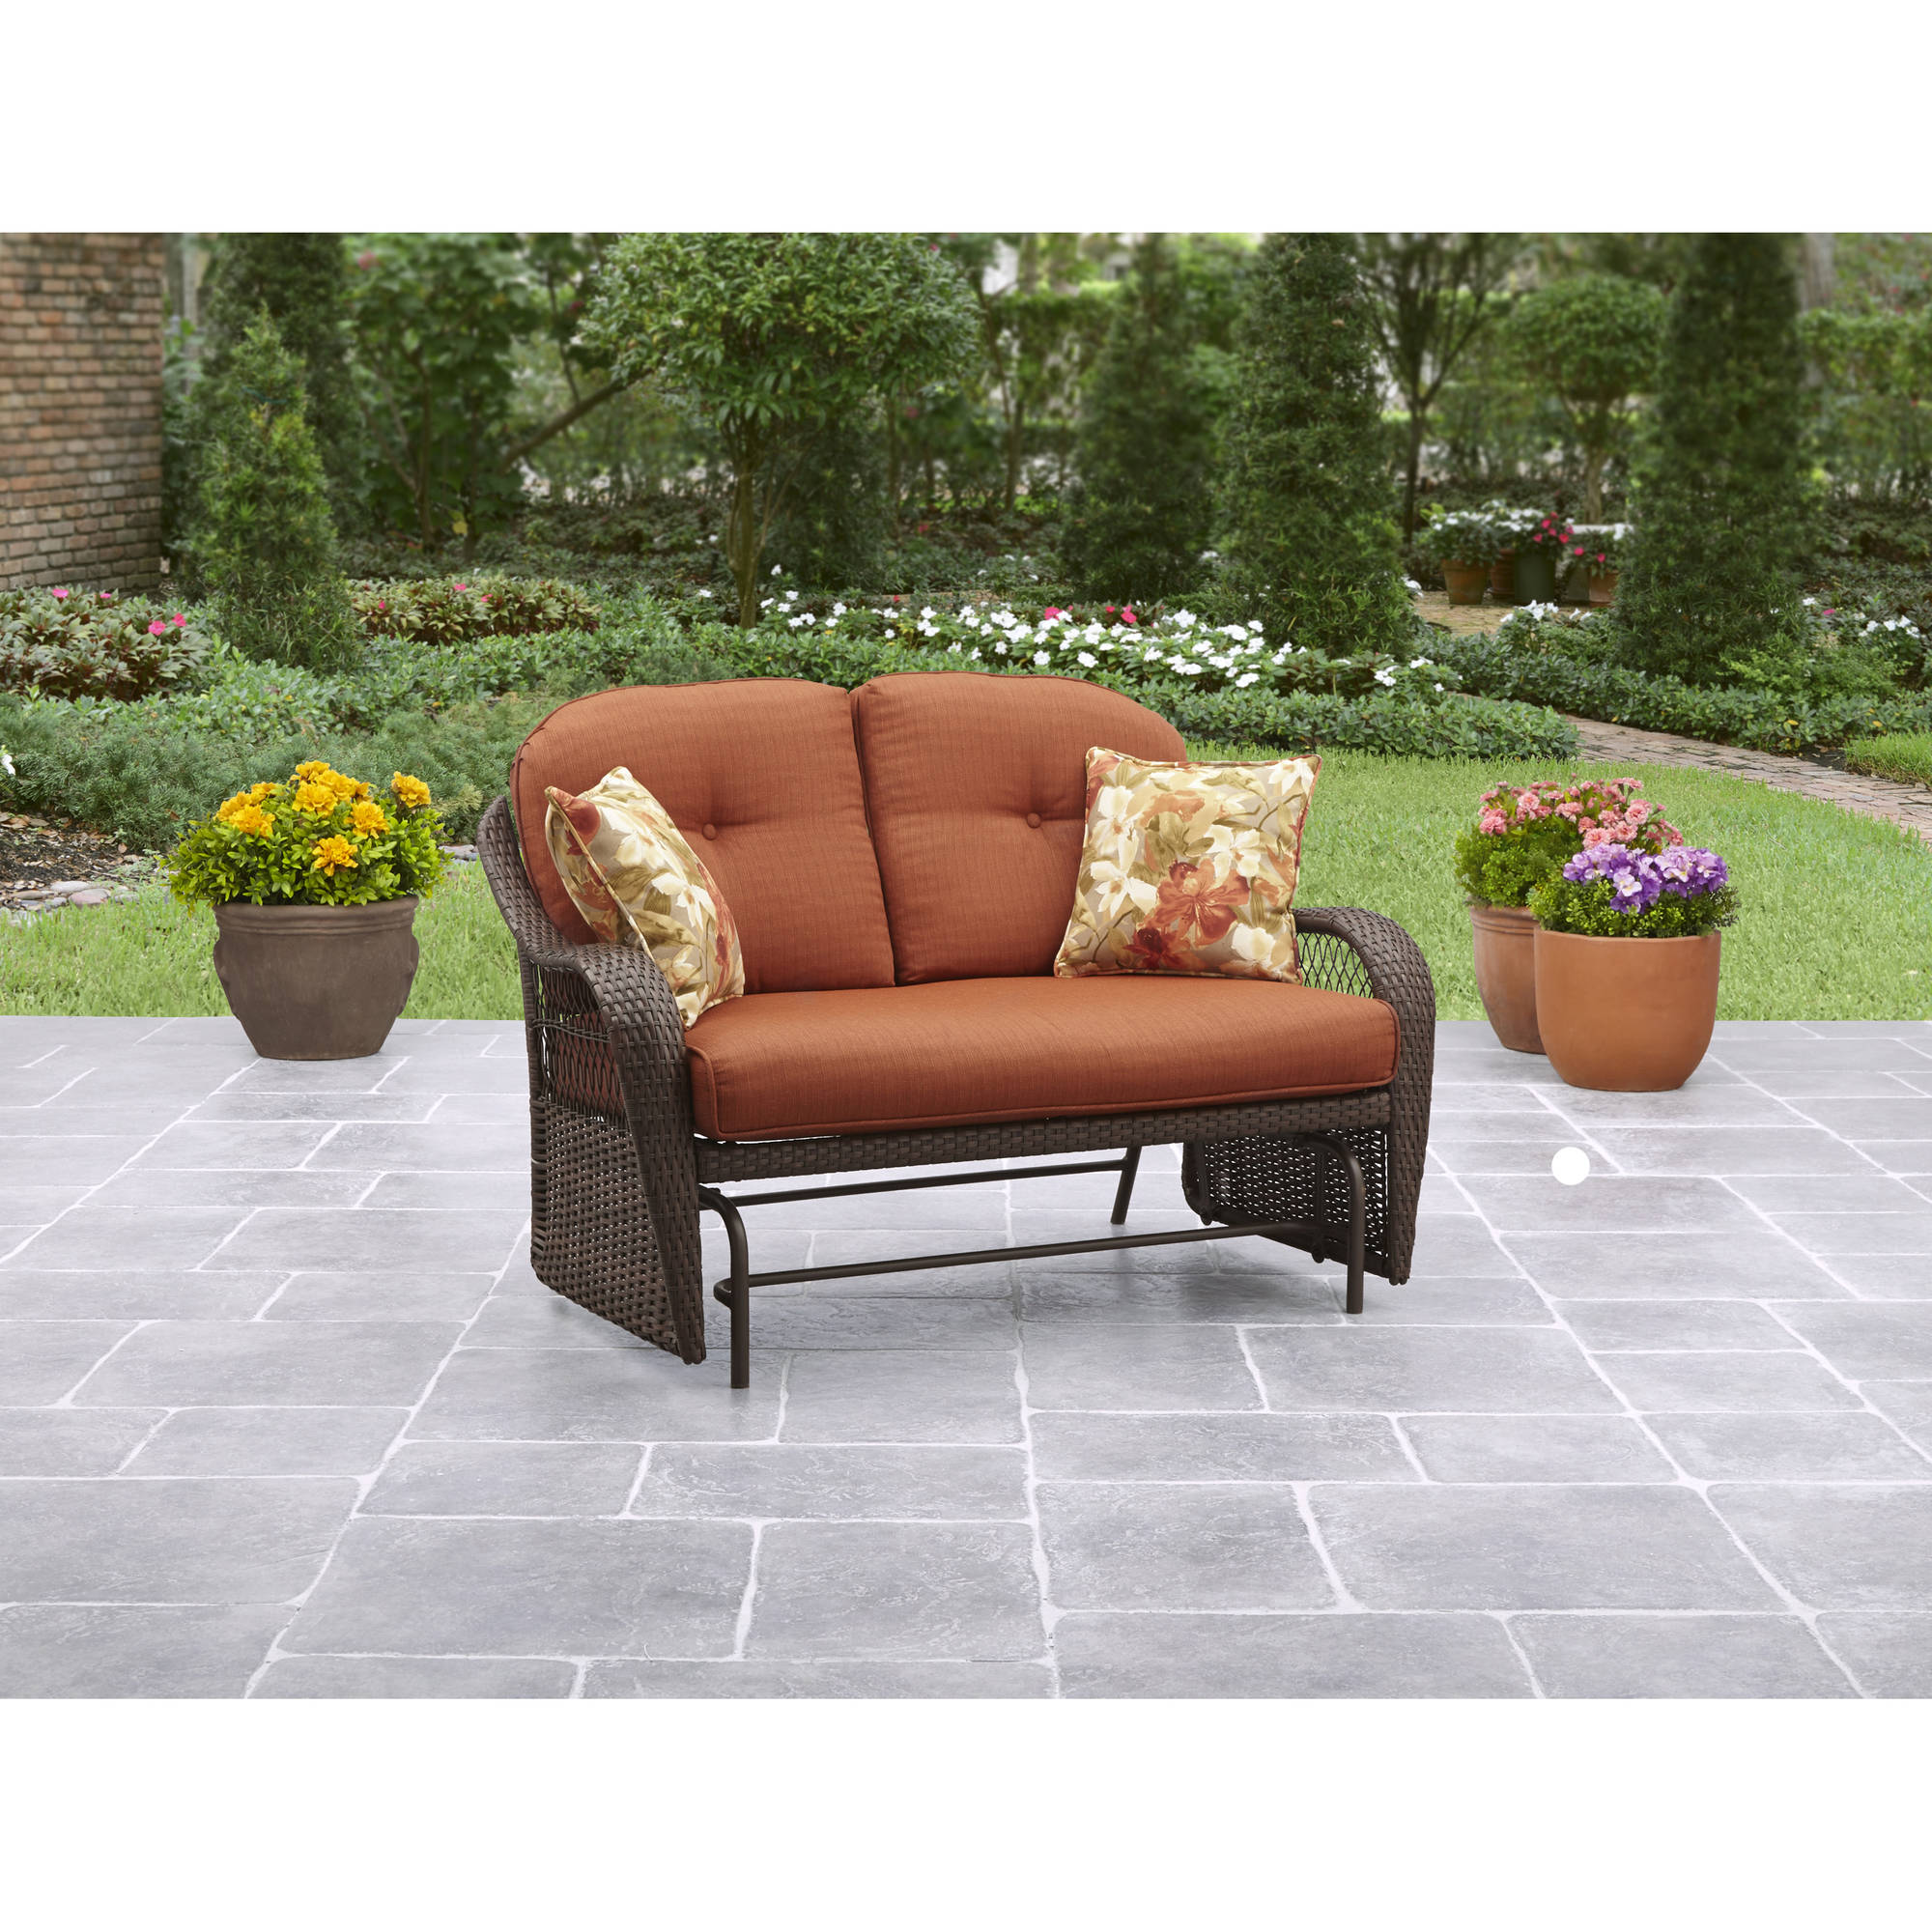 Better Homes Gardens Azalea Ridge 2 Person Outdoor Glider